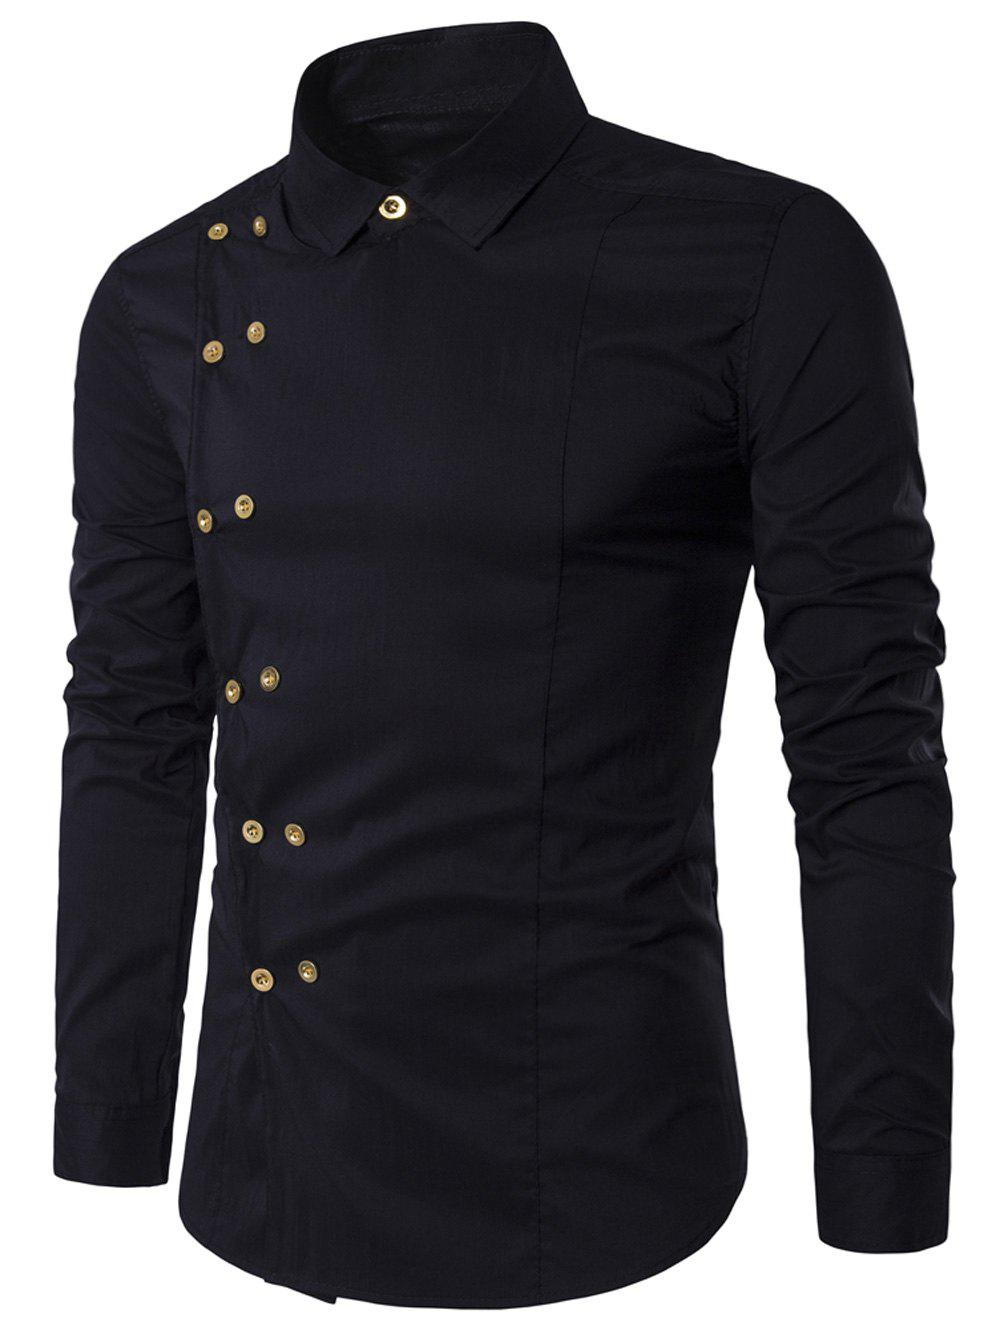 Black L Double Breasted Turndown Collar Long Sleeve Shirt